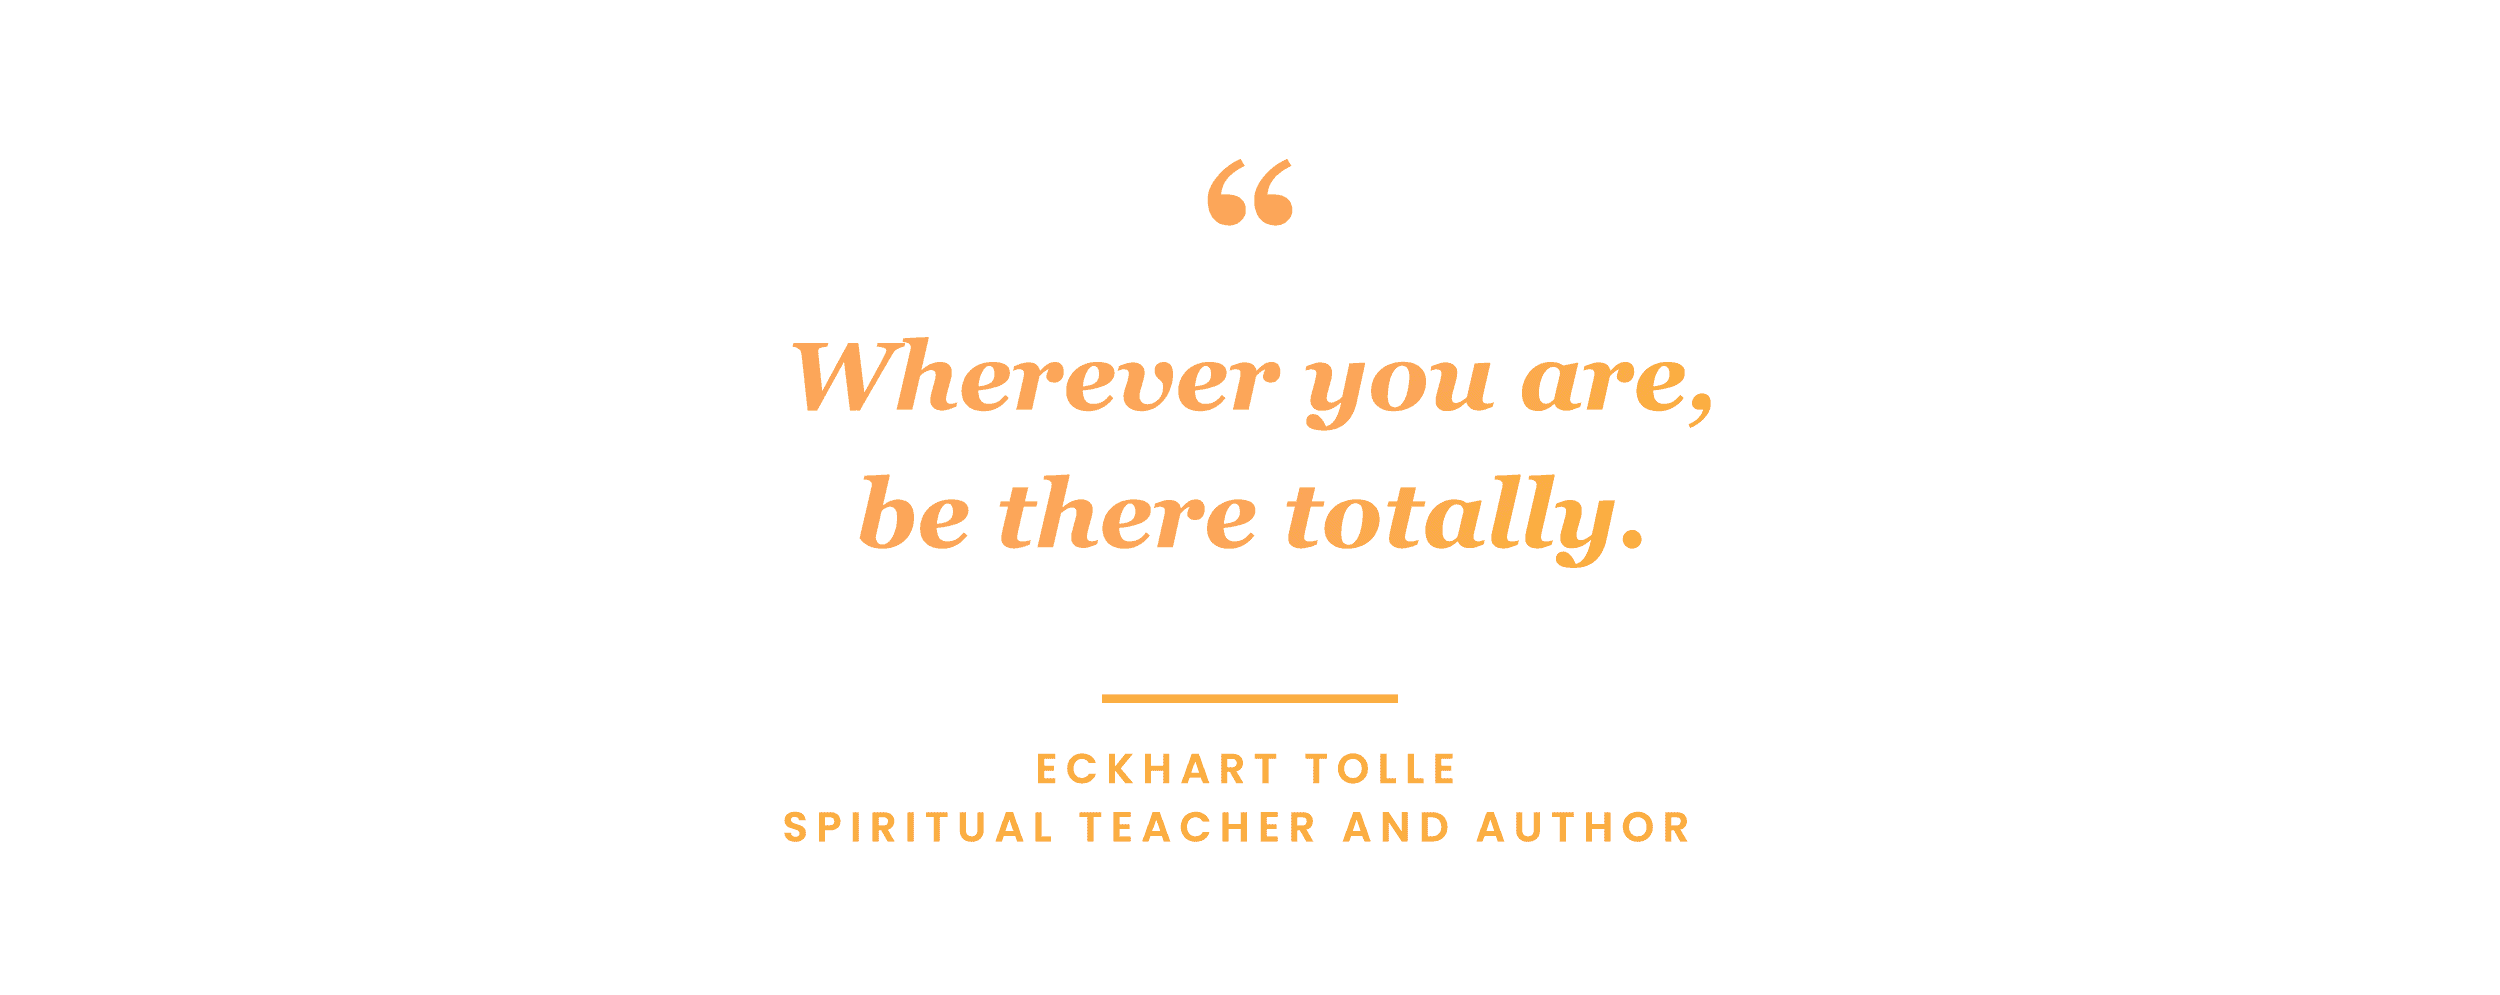 mindfulness quote by Eckhart Tolle